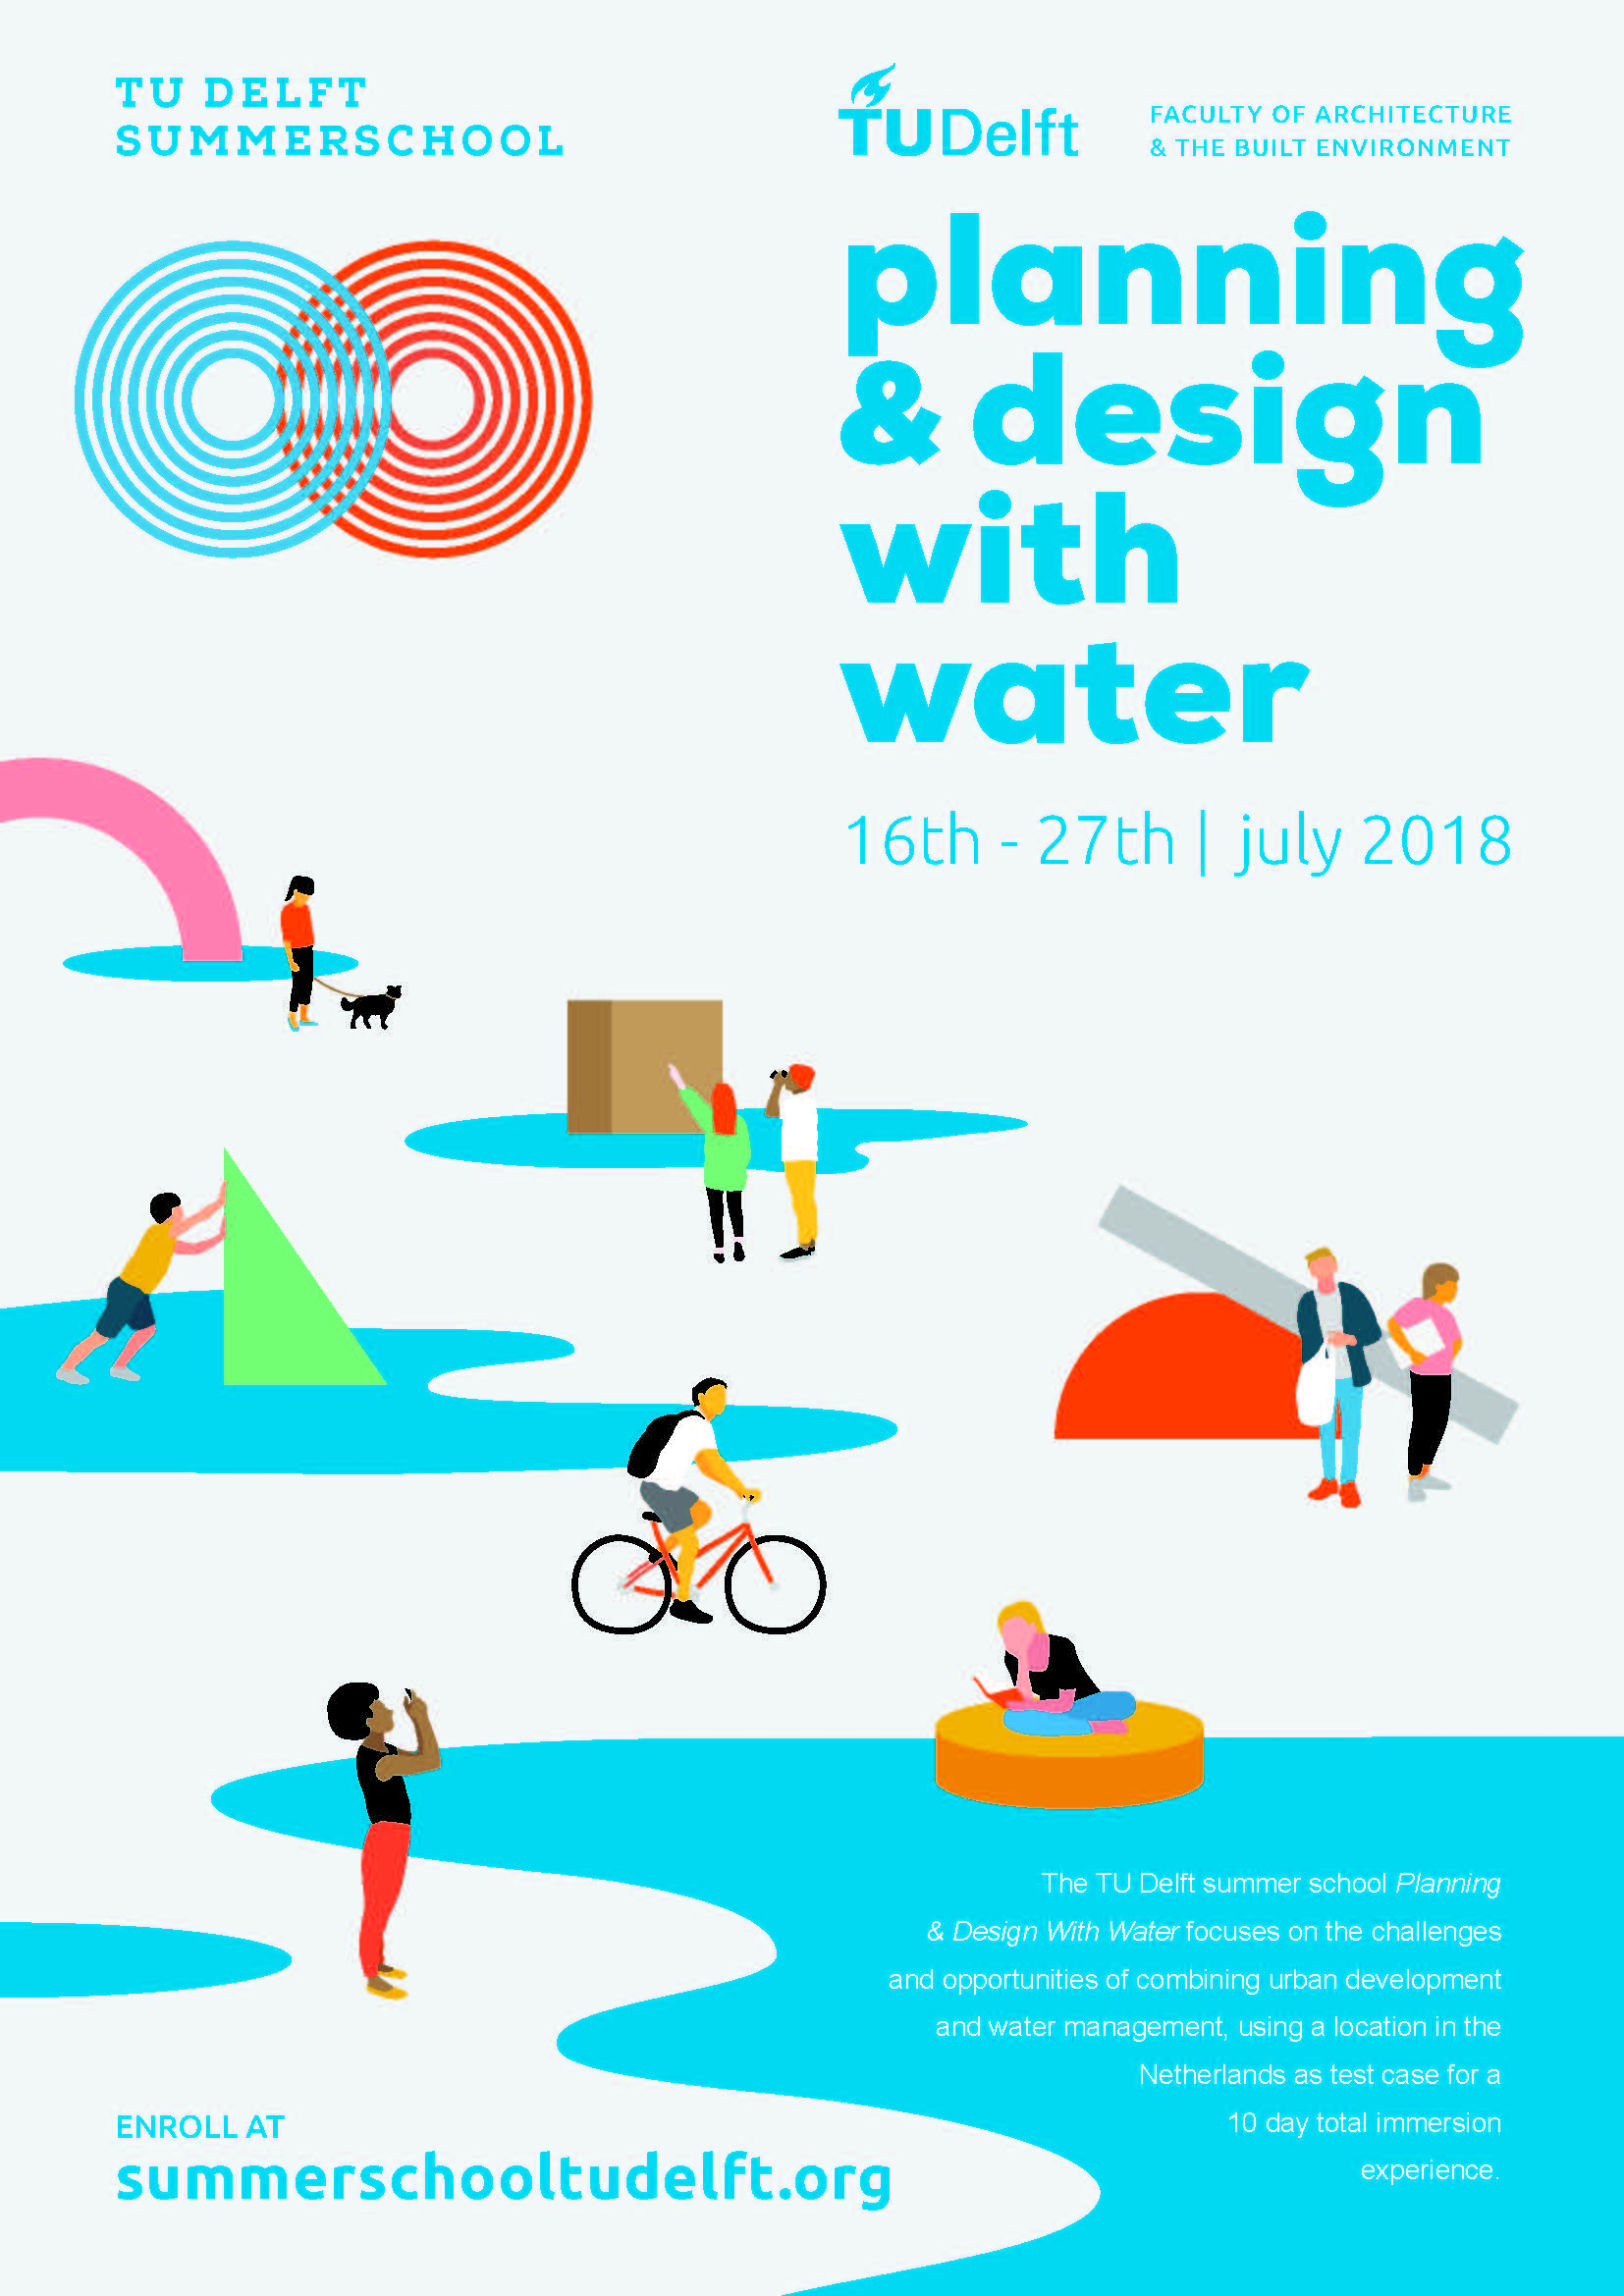 Tu Delft Planning And Design With Water | Planning For A Sustainable intended for Tu Delft Time Table Boukunde 2020